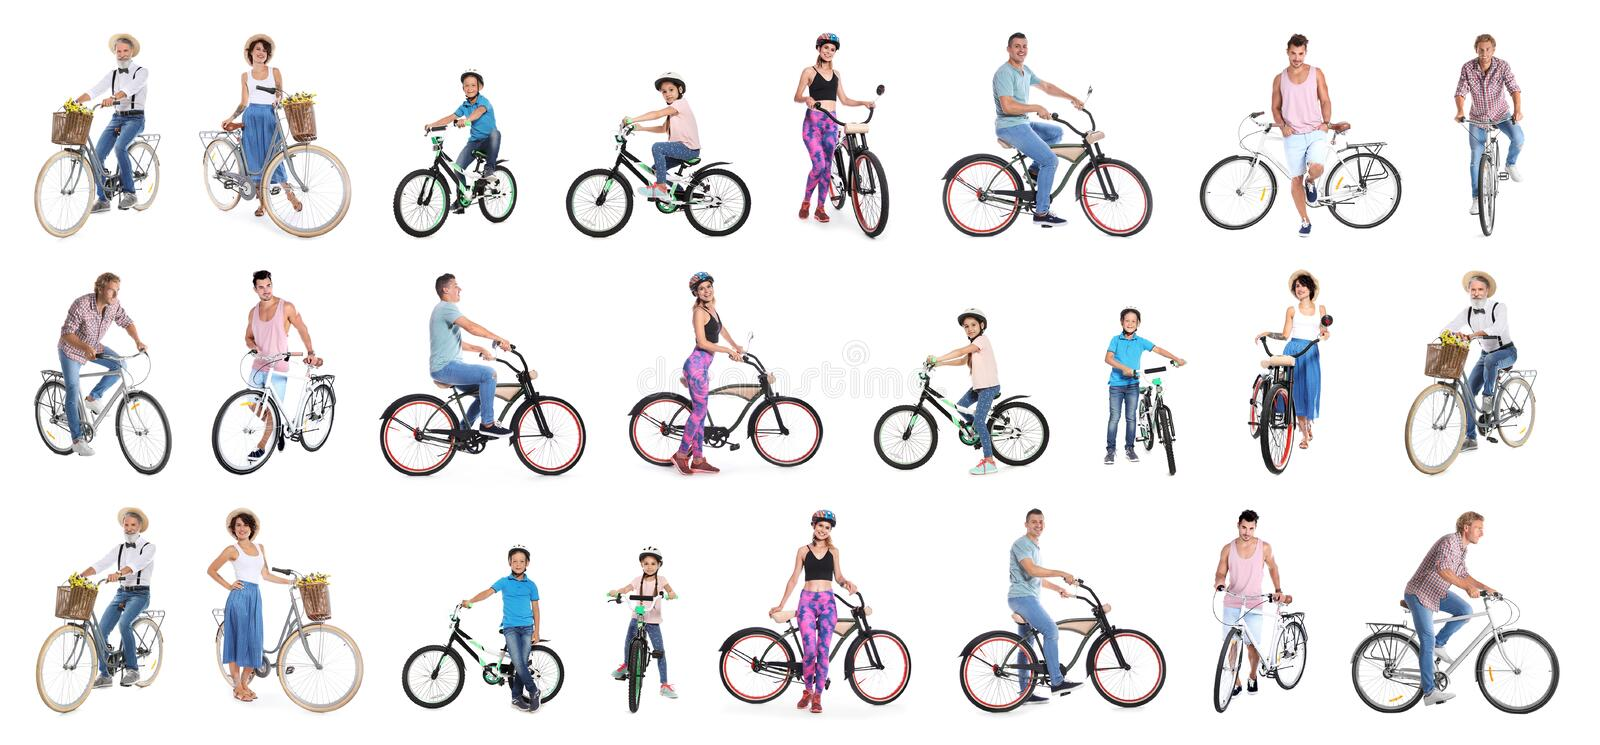 Collage of people with bicycles on white royalty free stock photo